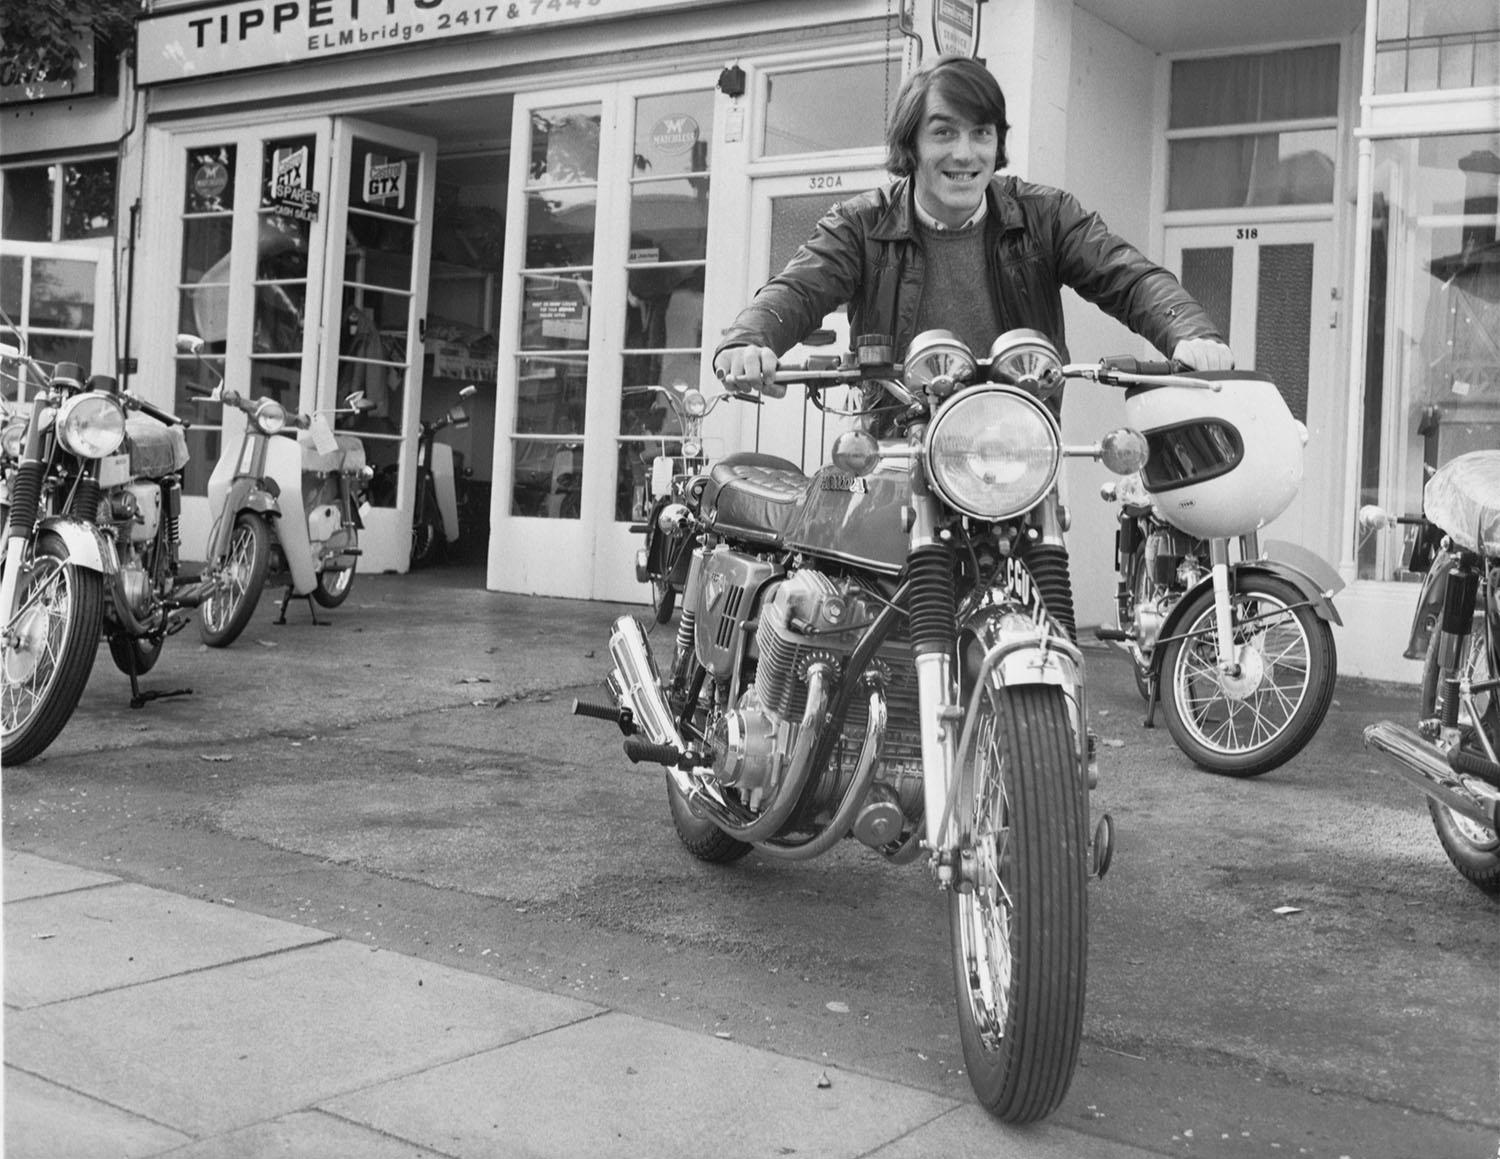 The Earl of Denbigh with 'the Brighton bike' Honda CB750